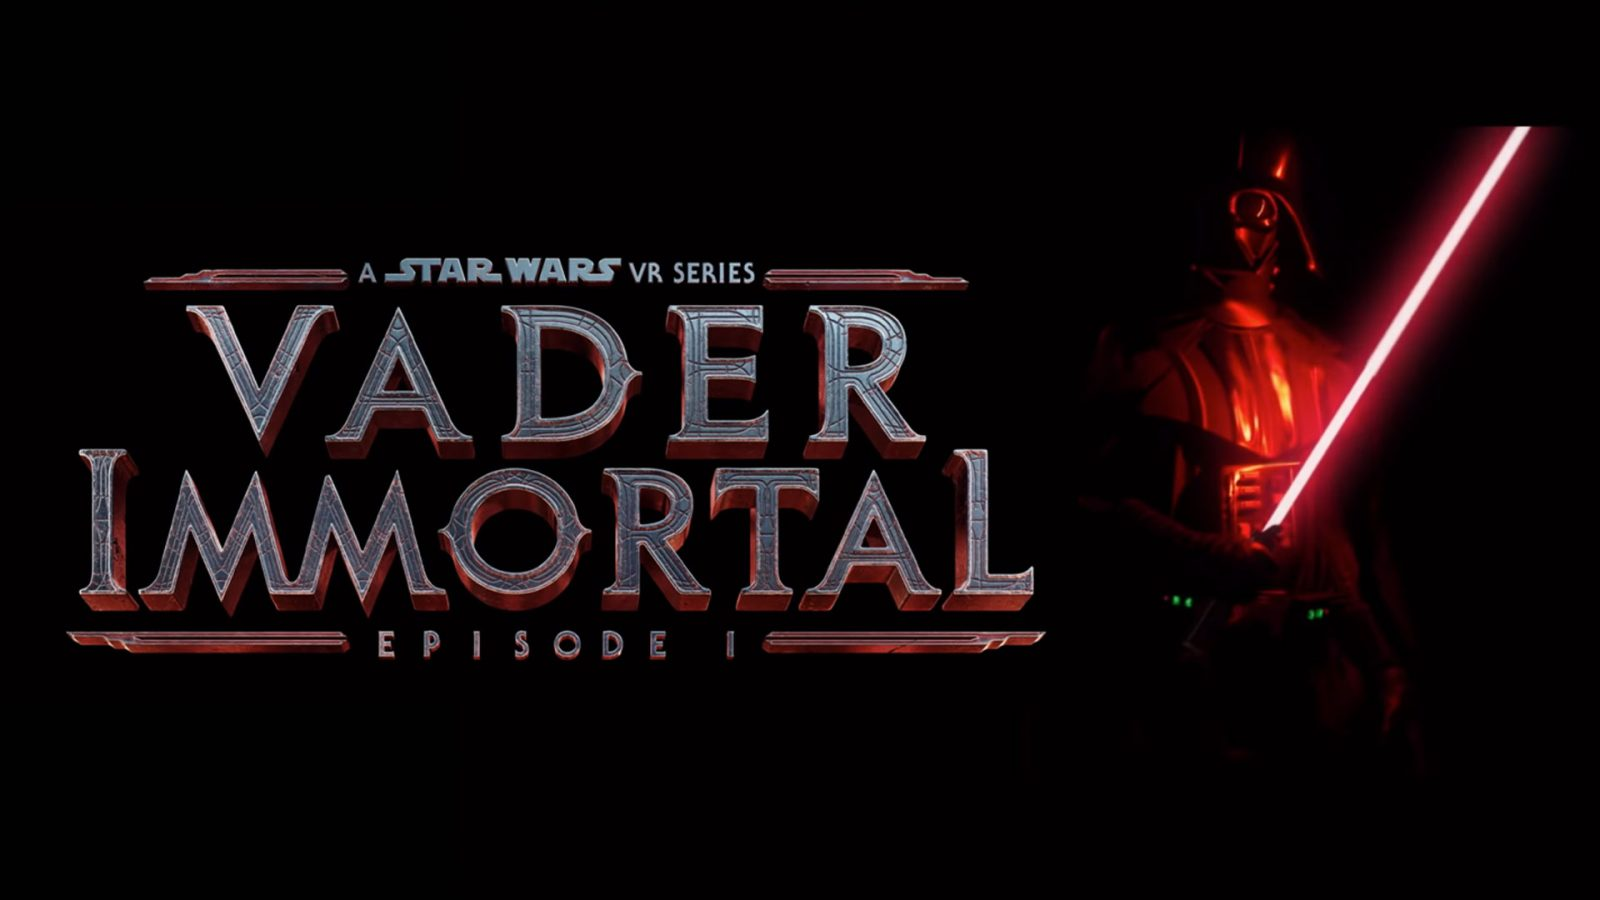 7a3b356c78 Become engulfed in the dark side w  Vader Immortal Episode 1 VR